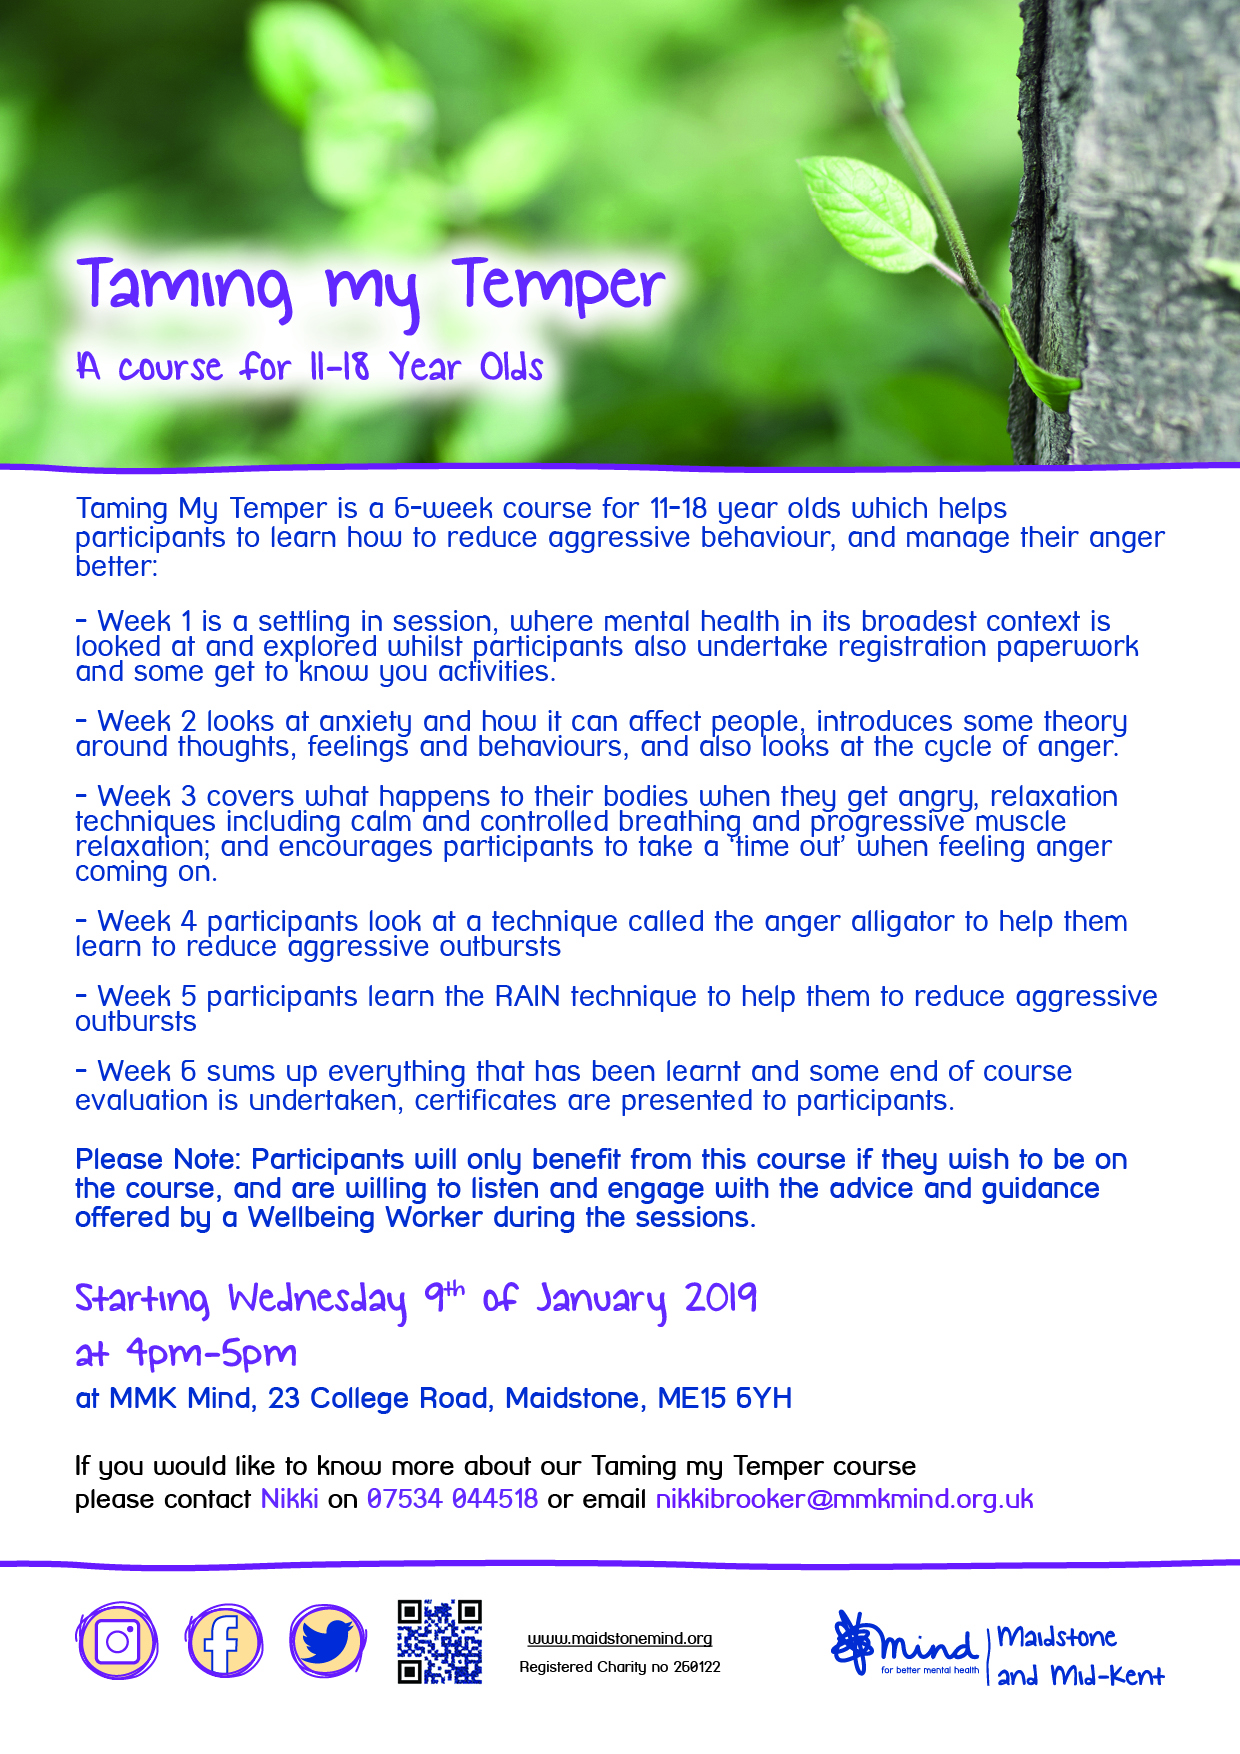 Taming My Temper January 2019. Taming my Temper. A course for 11-18 Year Olds. Taming My Temper is a 6-week course for 11-18 year olds which helps participants to learn how to reduce aggressive behaviour, and manage their anger better: - Week 1 is a settling in session, where mental health in its broadest context is looked at and explored whilst participants also undertake registration paperwork and some get to know you activities. - Week 2 looks at anxiety and how it can affect people, introduces some theory around thoughts, feelings and behaviours, and also looks at the cycle of anger. - Week 3 covers what happens to their bodies when they get angry, relaxation techniques including calm and controlled breathing and progressive muscle relaxation; and encourages participants to take a 'time out' when feeling anger coming on. - Week 4 participants look at a technique called the anger alligator to help them learn to reduce aggressive outbursts - Week 5 participants learn the RAIN technique to help them to reduce aggressive outbursts - Week 6 sums up everything that has been learnt and some end of course evaluation is undertaken, certificates are presented to participants. Please Note: Participants will only benefit from this course if they wish to be on the course, and are willing to listen and engage with the advice and guidance offered by a Wellbeing Worker during the sessions. Starting Wednesday 9th of January 2019 at 4pm-5pm at MMK Mind, 23 College Road, Maidstone, ME15 6YH If you would like to know more about our Taming my Temper course please contact Nikki on 07534 044518 or email nikkibrooker@mmkmind.org.uk.